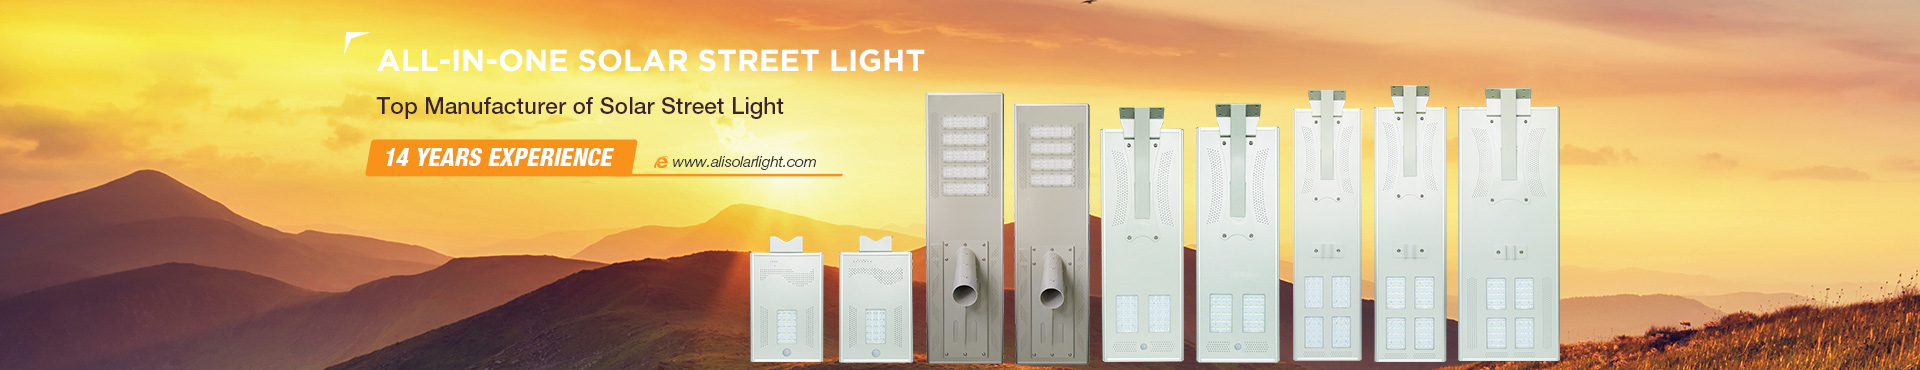 Al-X Series All In One Solar Street Light